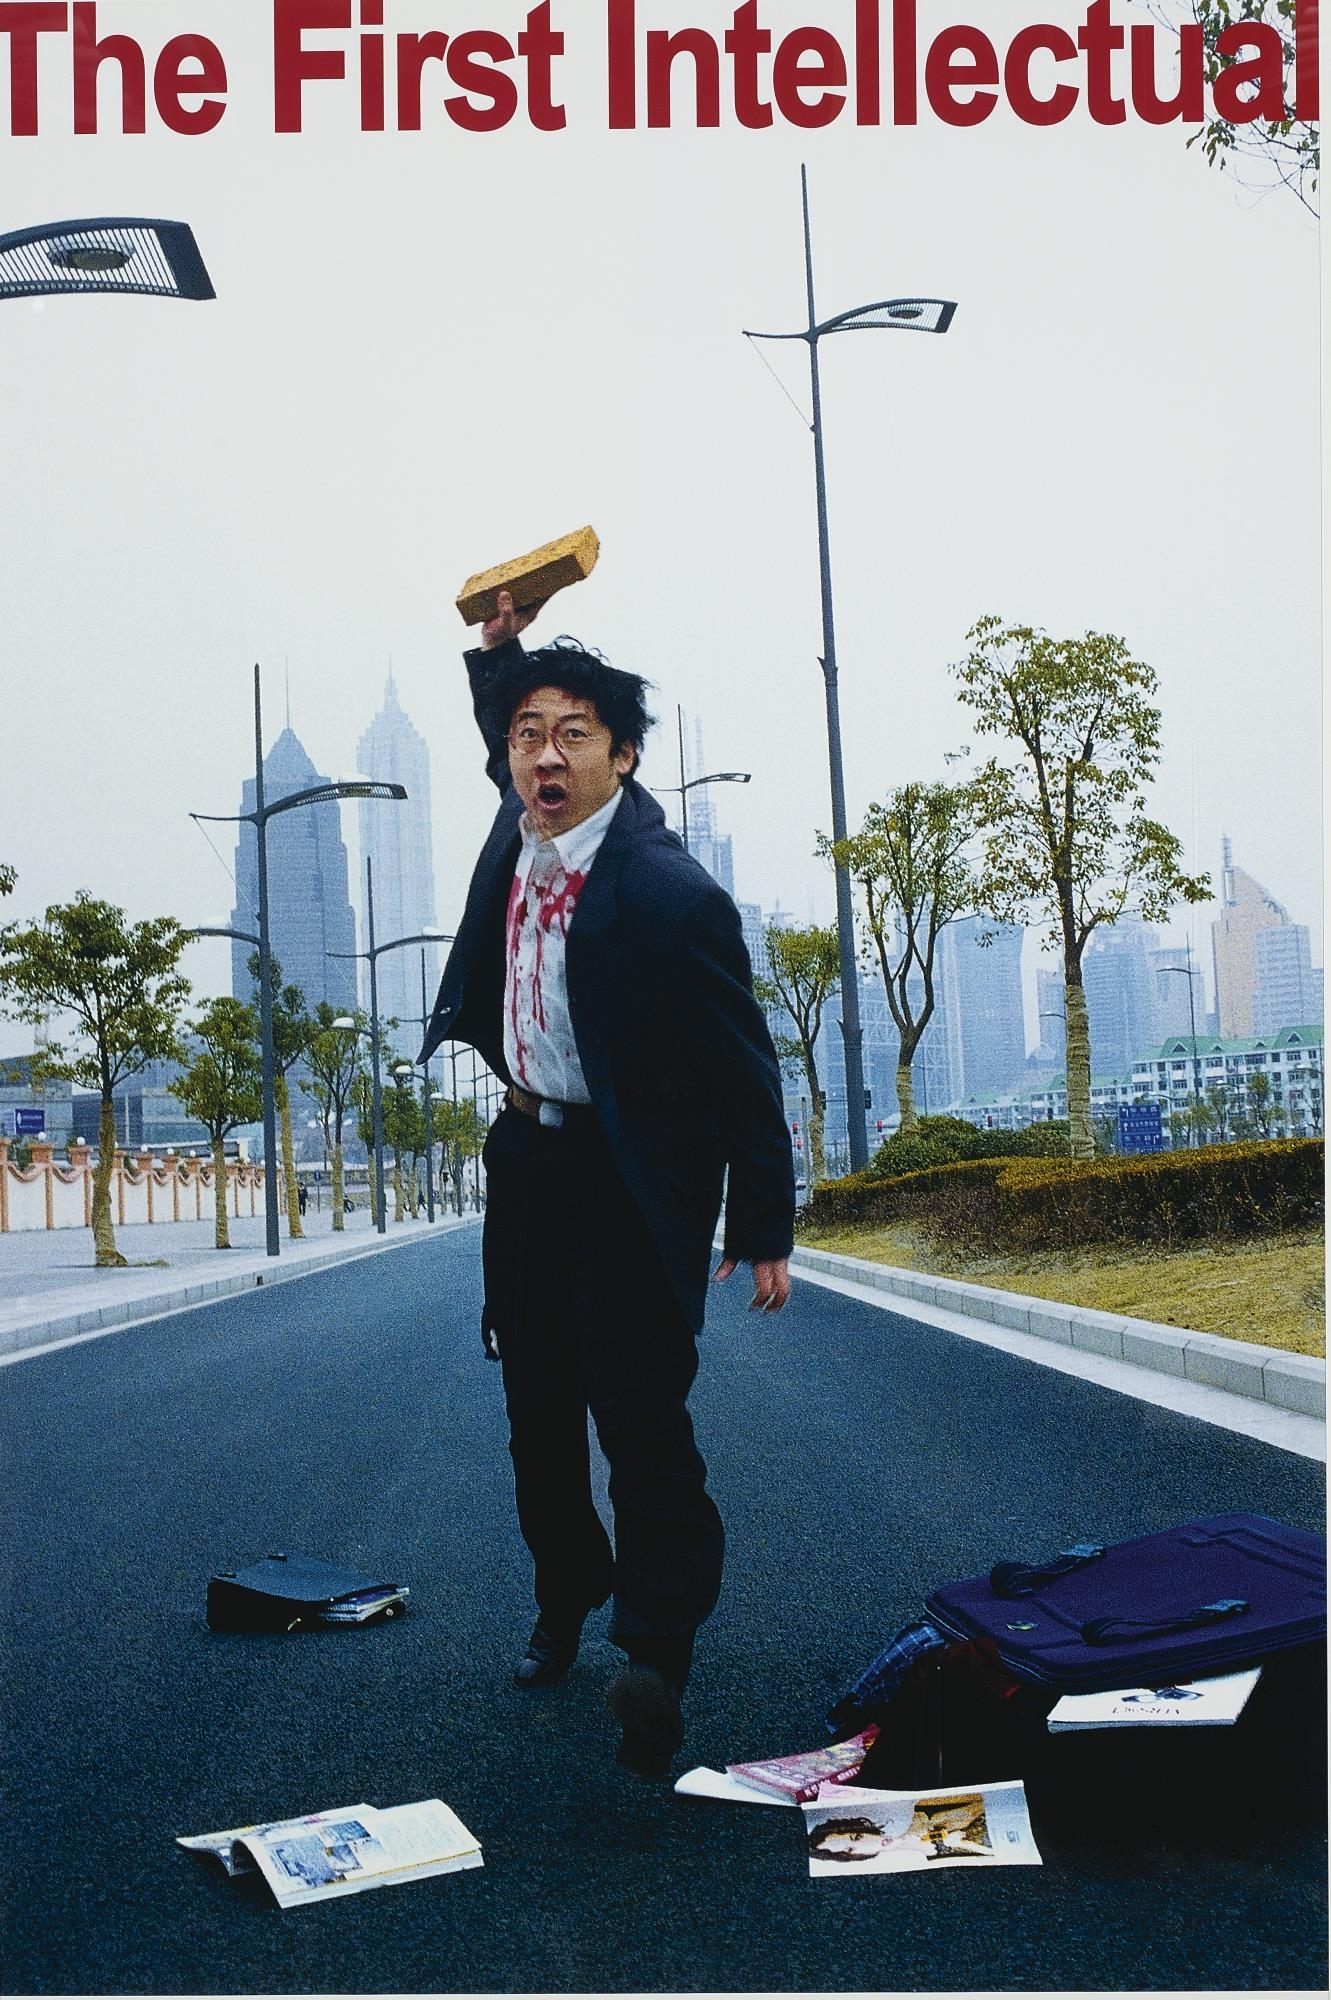 The First Intellectual (Diyi ge zhishi fenzi), 2000, C-print, série de 3 photographies, 193x127 chacune. Édition de 10. (3)